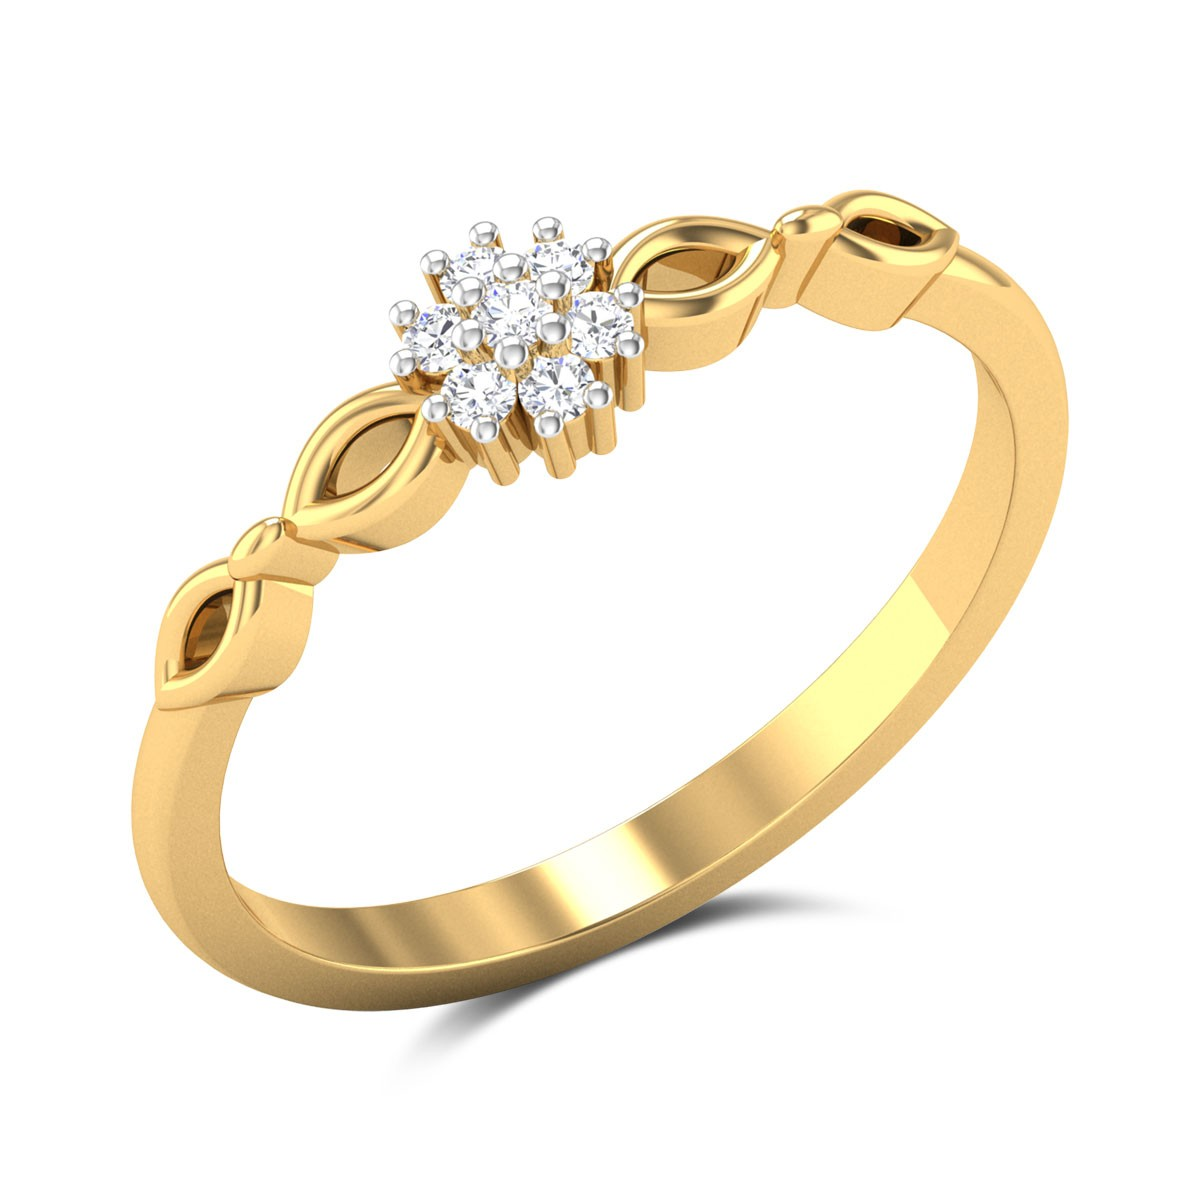 Meriel Diamond Studded Gold Ring DJRN5282